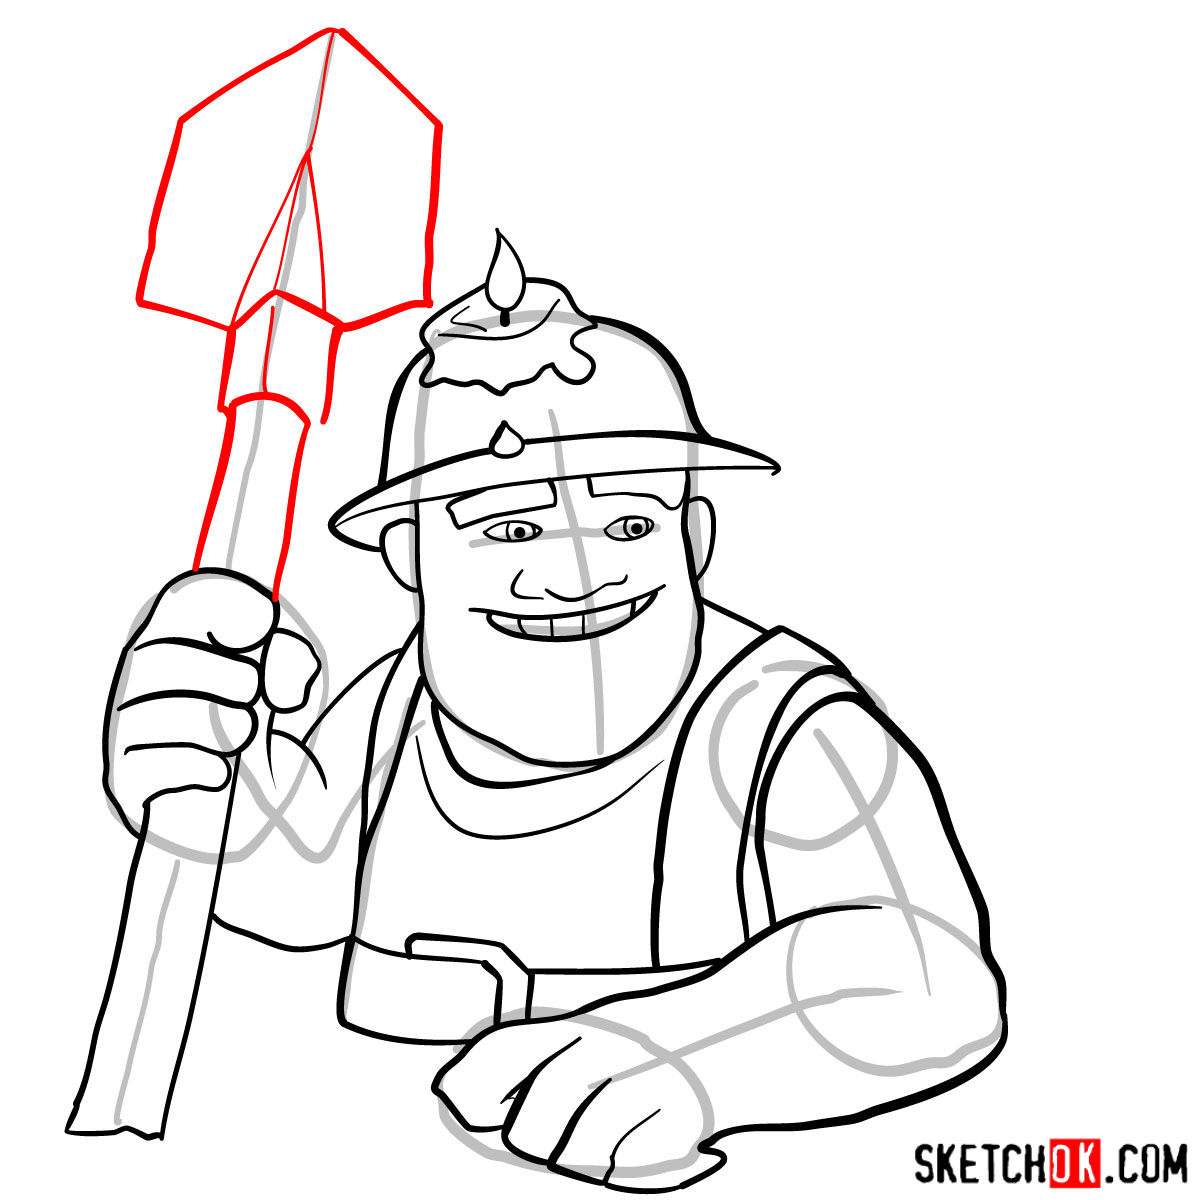 How to draw Miner from Clash of Clans game - step 11